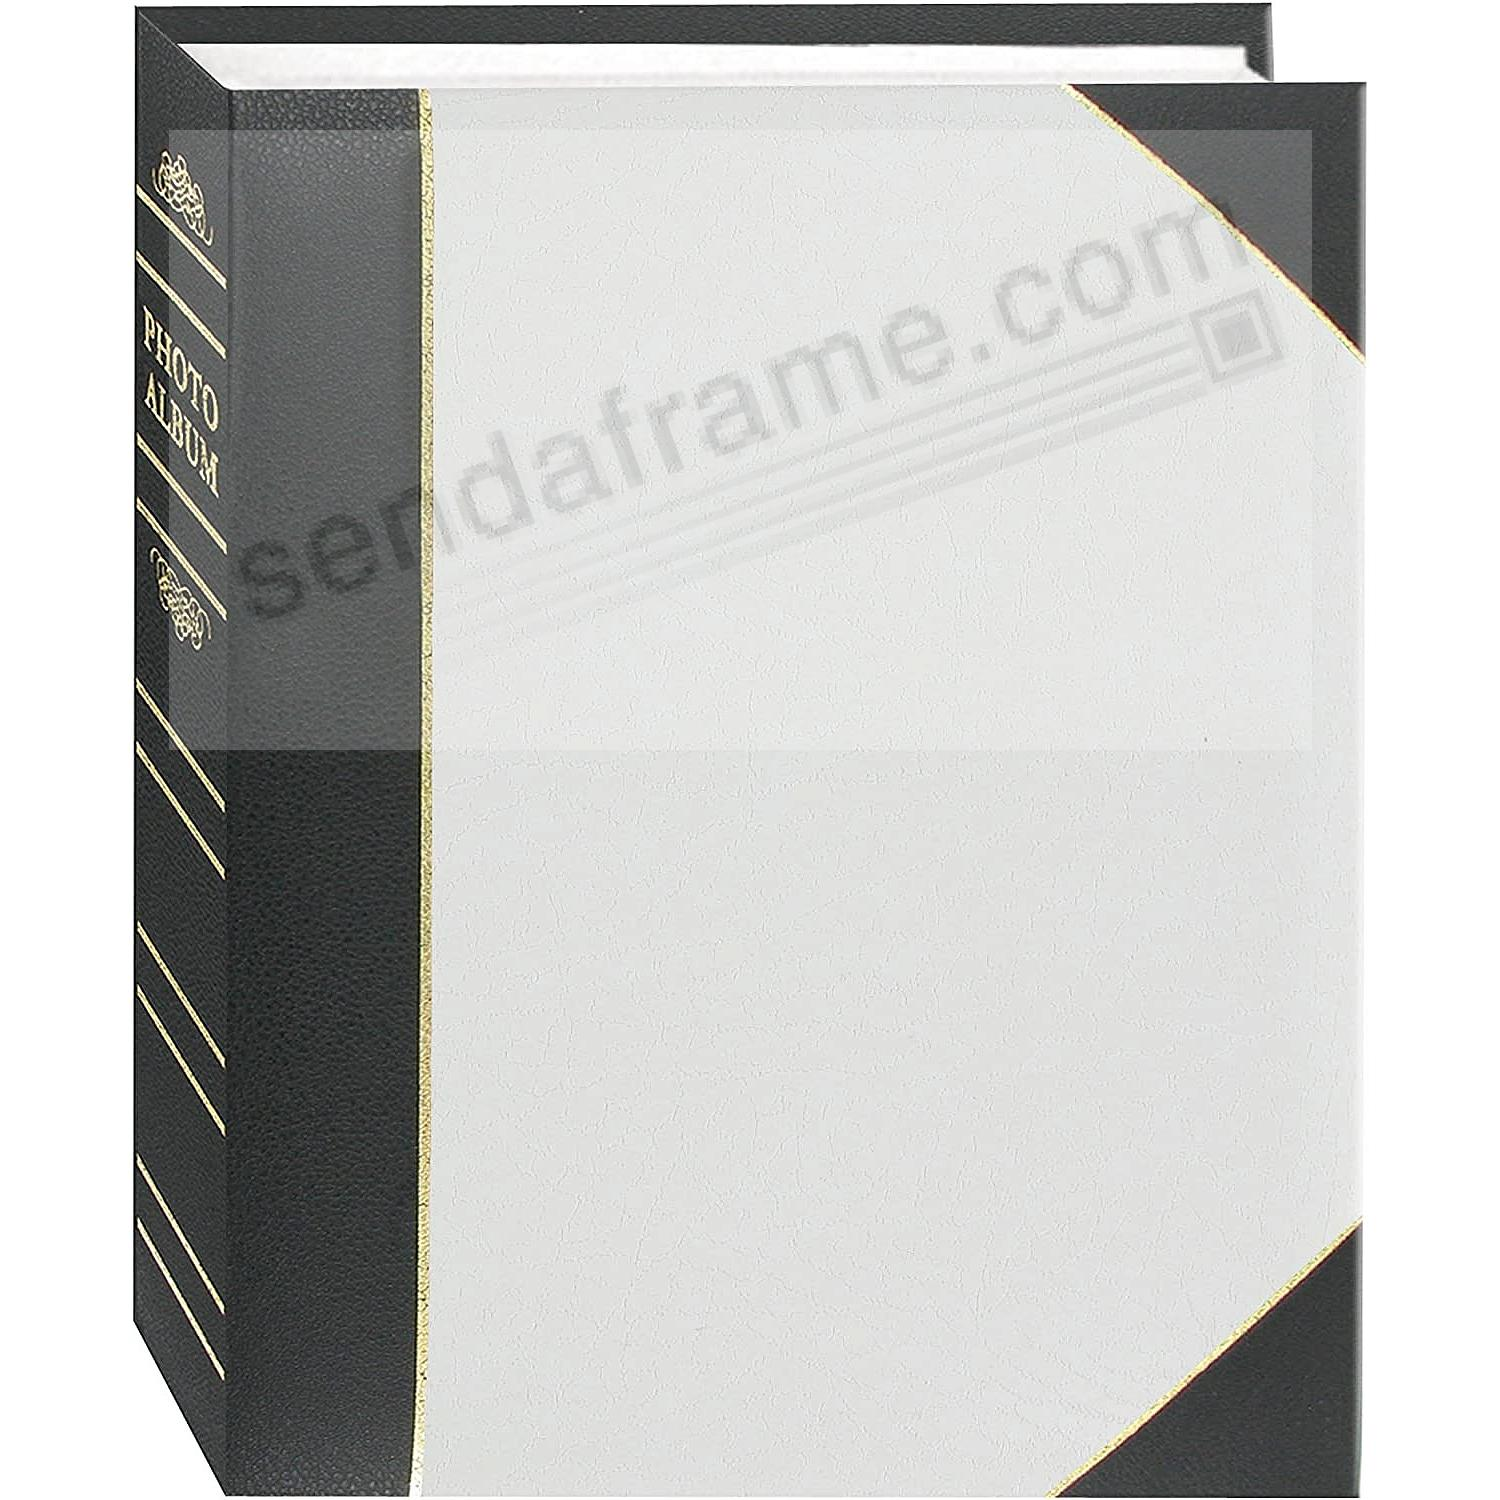 White LEDGER 4x6 200 Pocket Lé Memo Album by Pioneer®